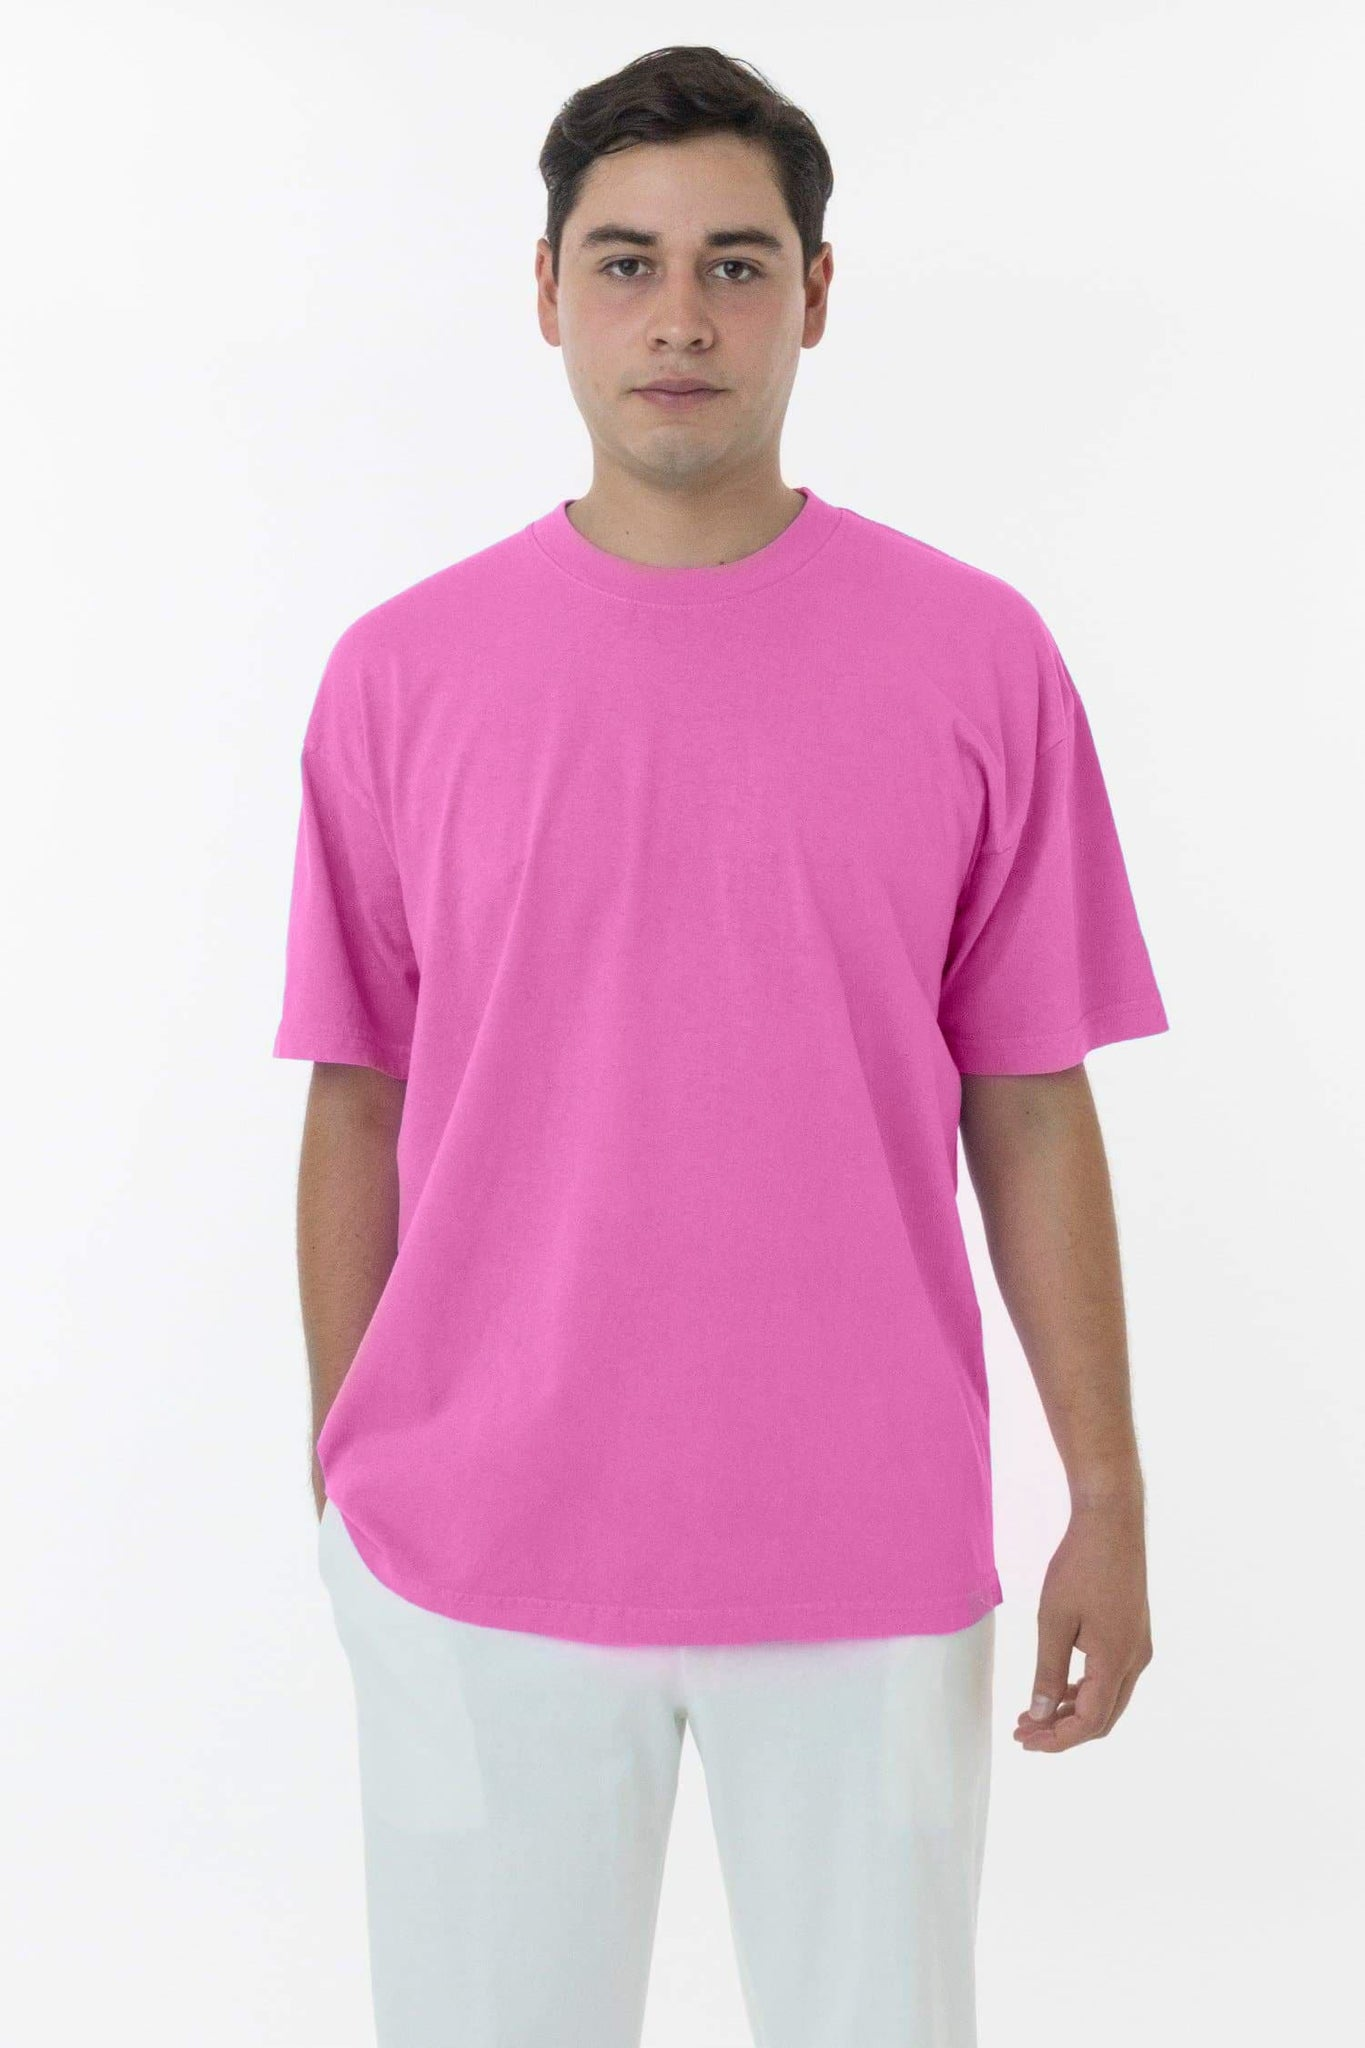 1801GD - 6.5oz Garment Dye Crew Neck T-Shirt